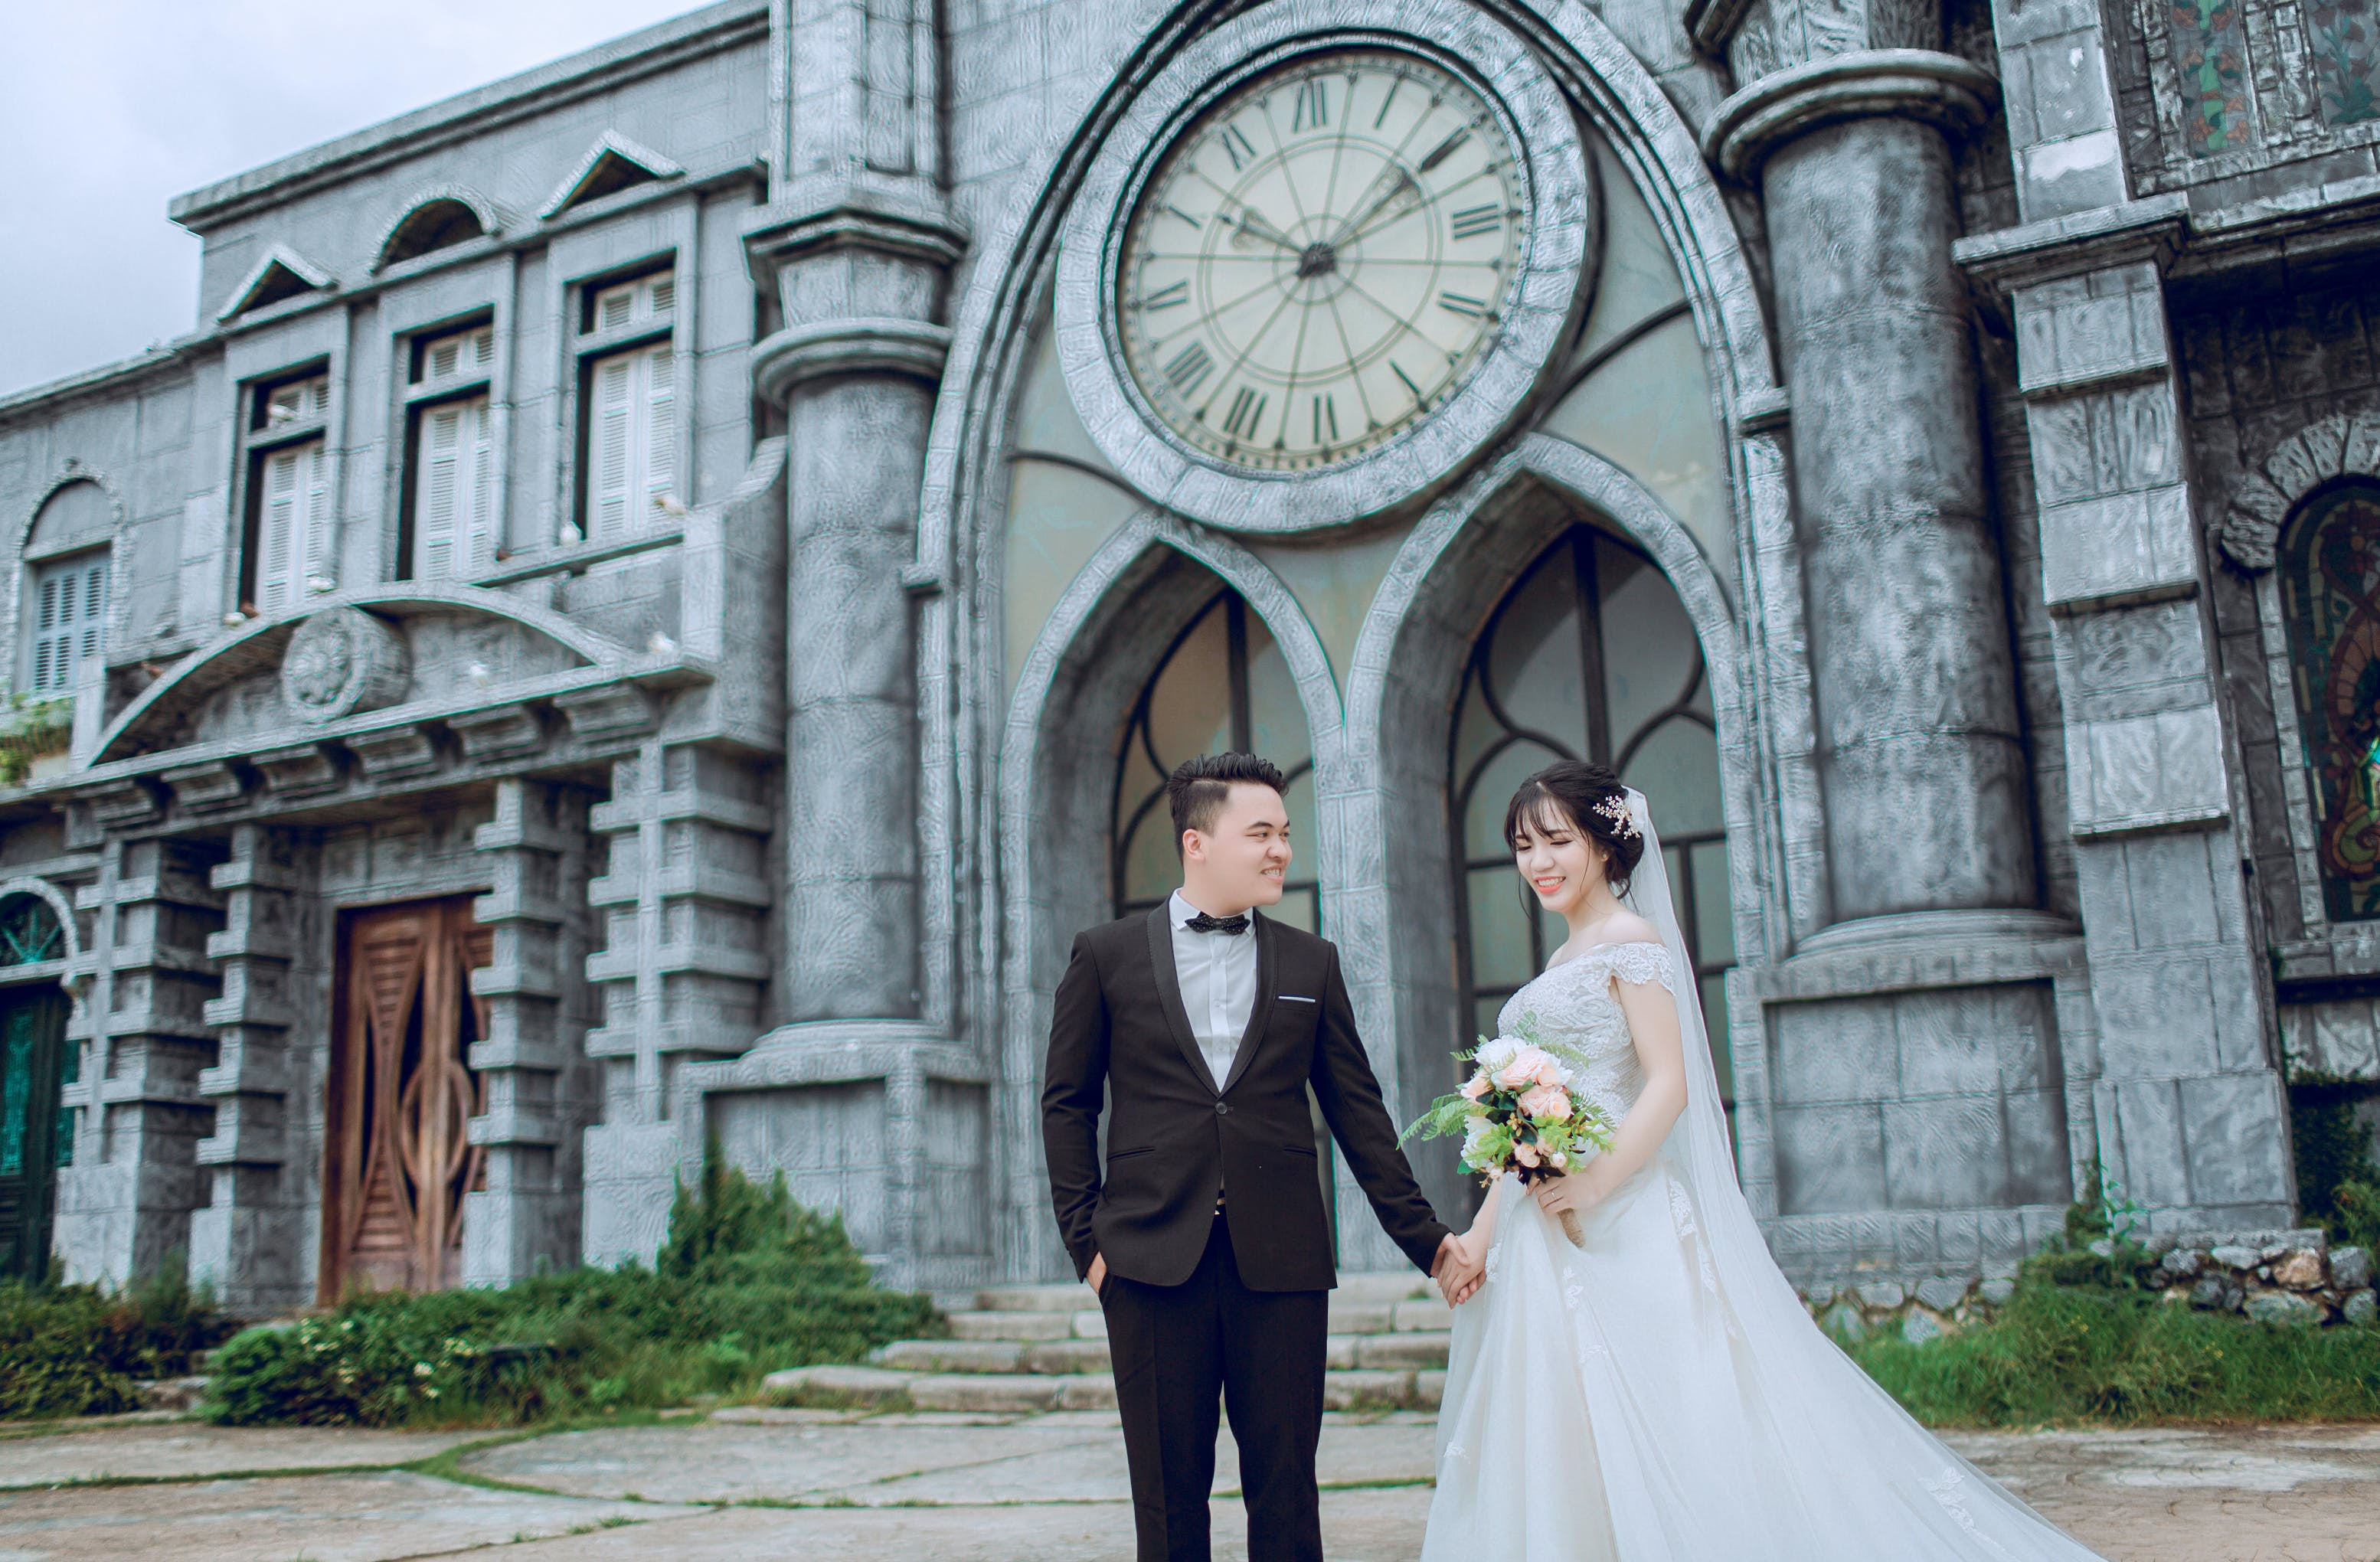 Groom Holding Bride's Hand Walking Near Cathedral